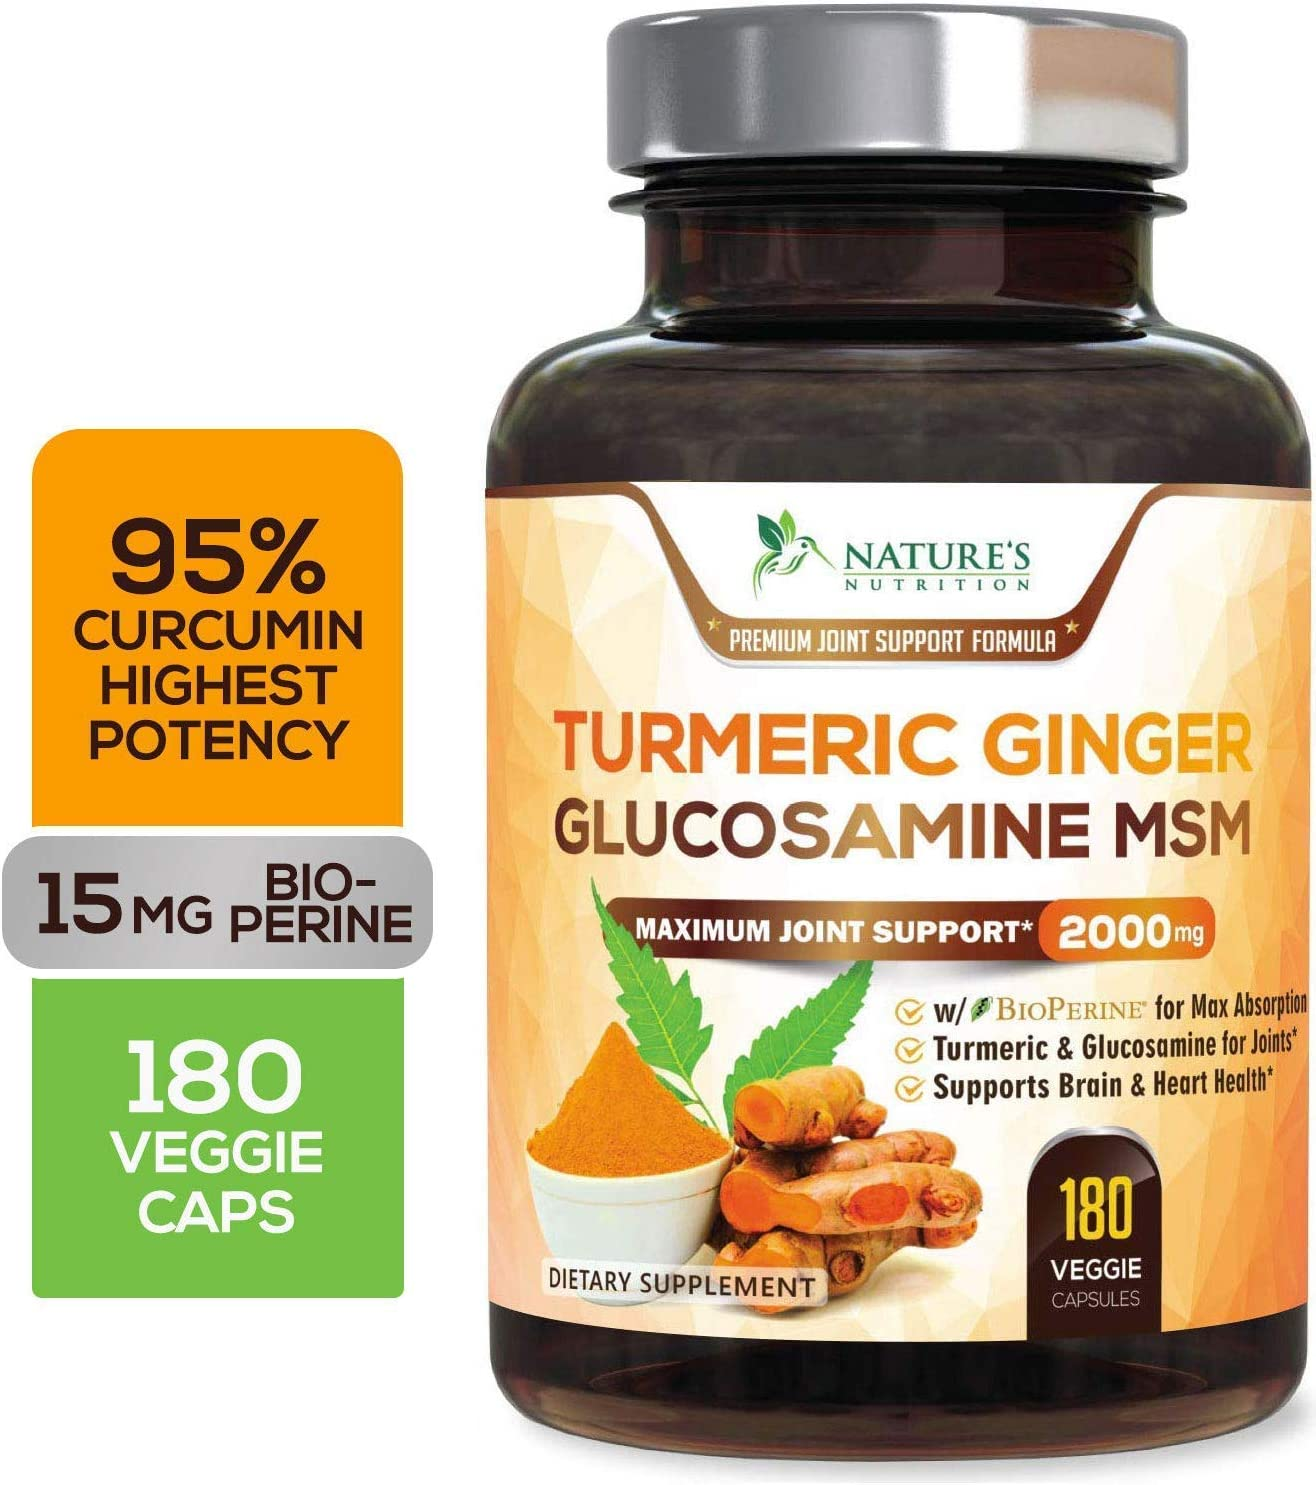 Turmeric Curcumin with Ginger, Glucosamine & MSM 2000mg 95% Curcuminoids, BioPerine for Best Absorption, Best Joint Support, Made in USA, Turmeric Pills by Natures Nutrition - 180 Capsules